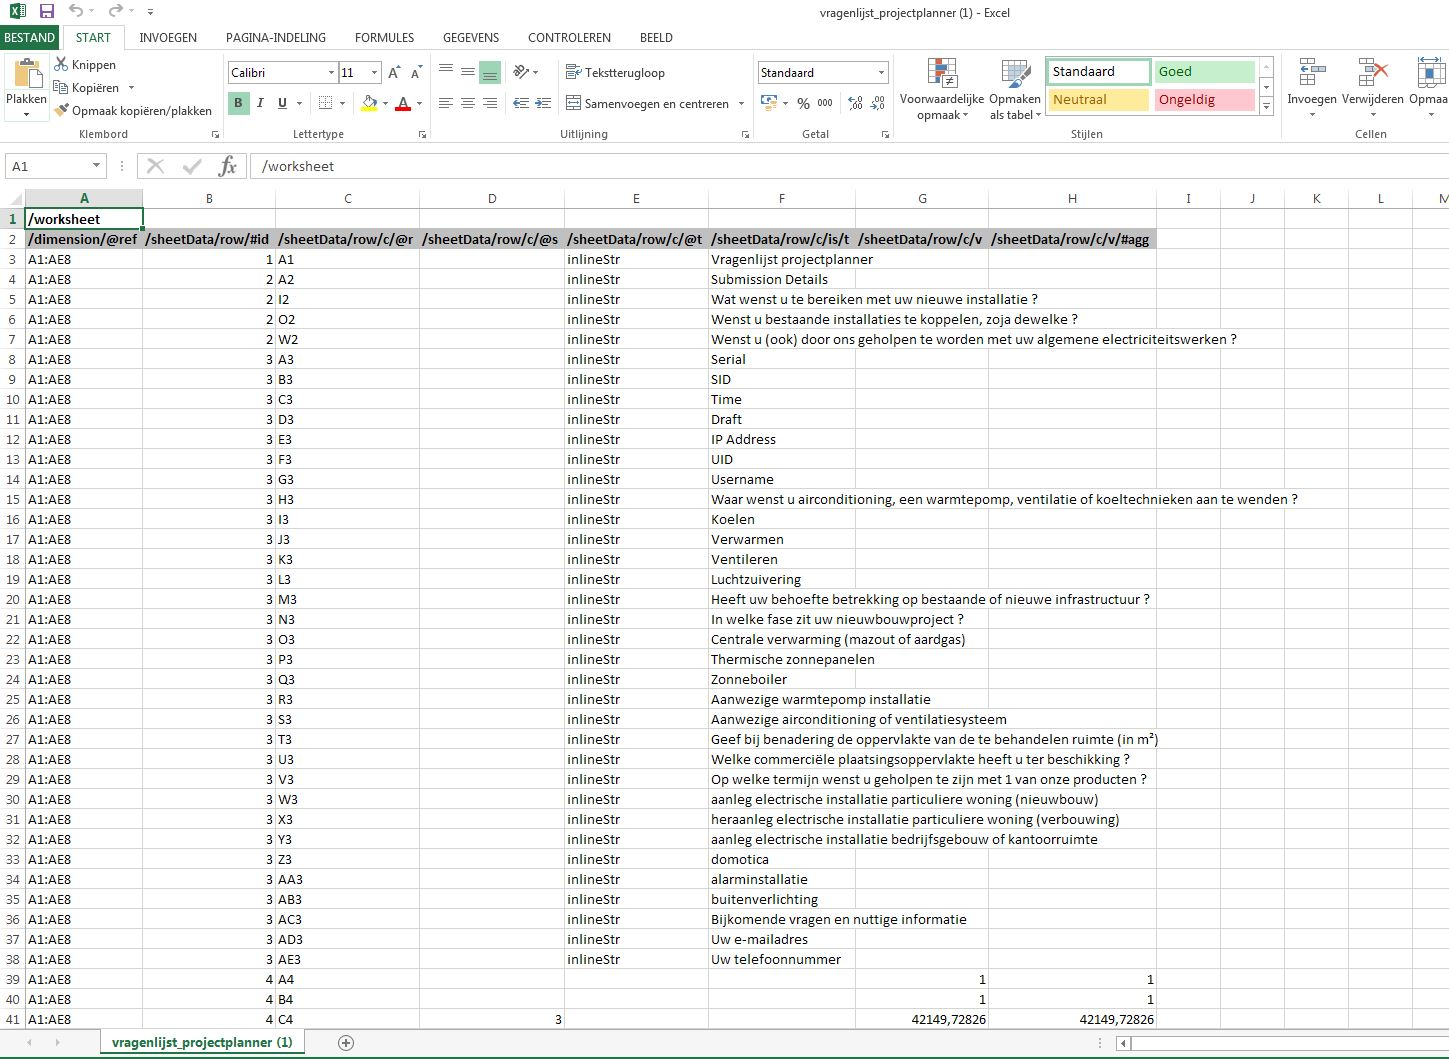 Excel reports Webform export files are corrupted when some